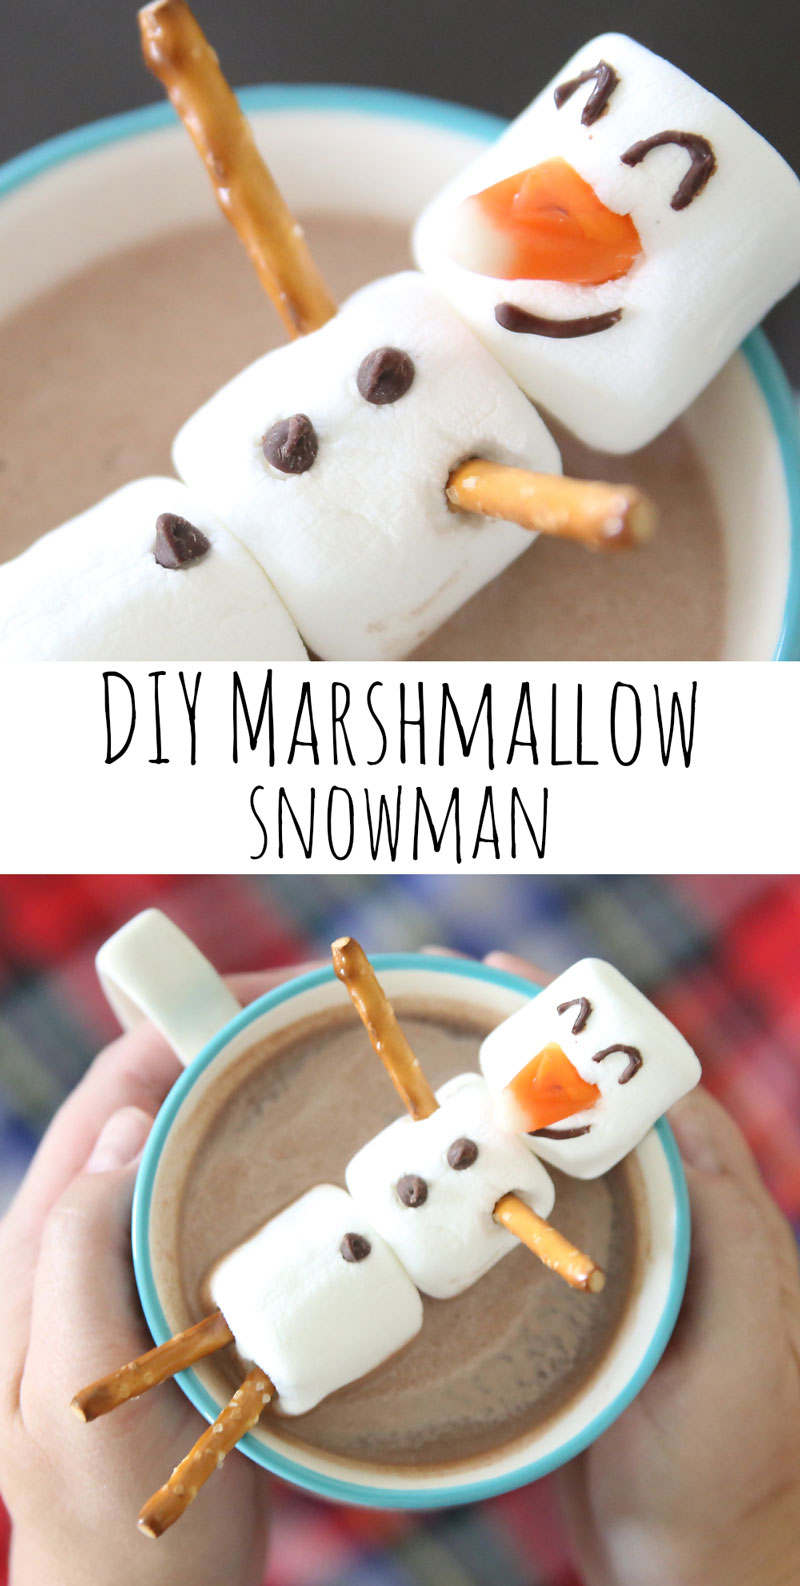 marshmallow-snowman-hot-chocolate-easy-kids-food-craft-activity-winter-fun-how-to-make-a-marshmallow-snowman-2.jpg